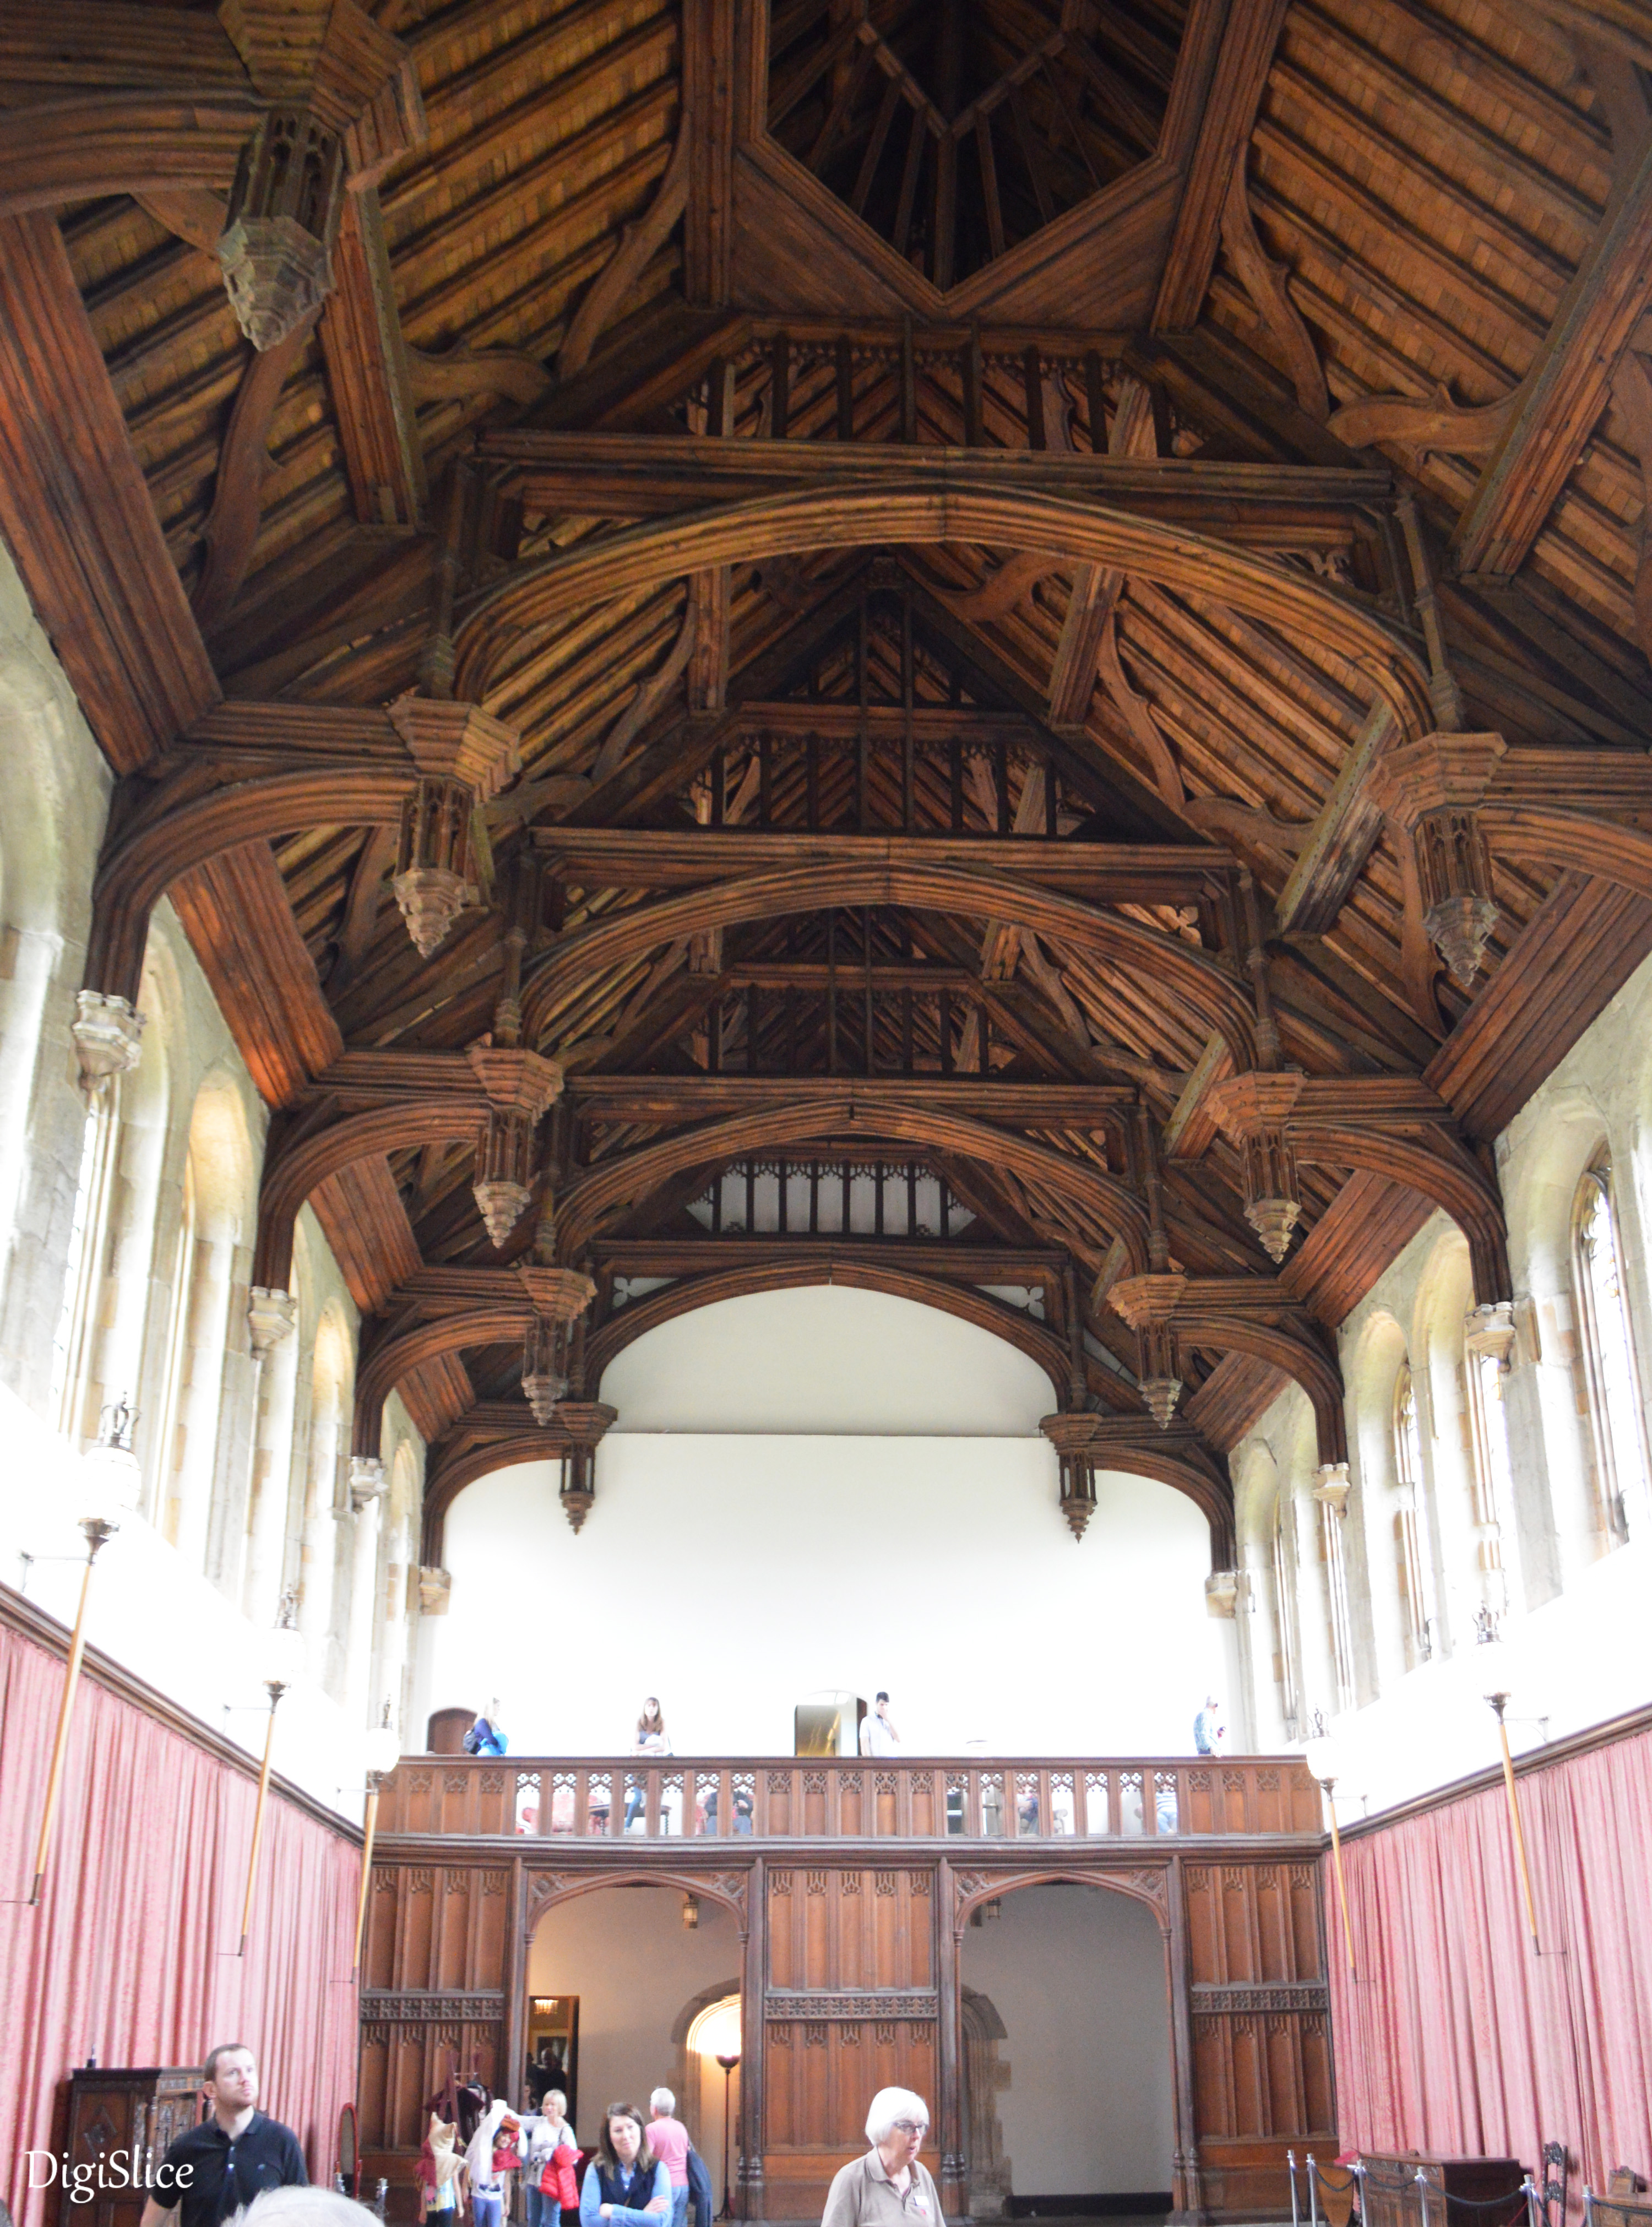 The great hall - Eltham Palace